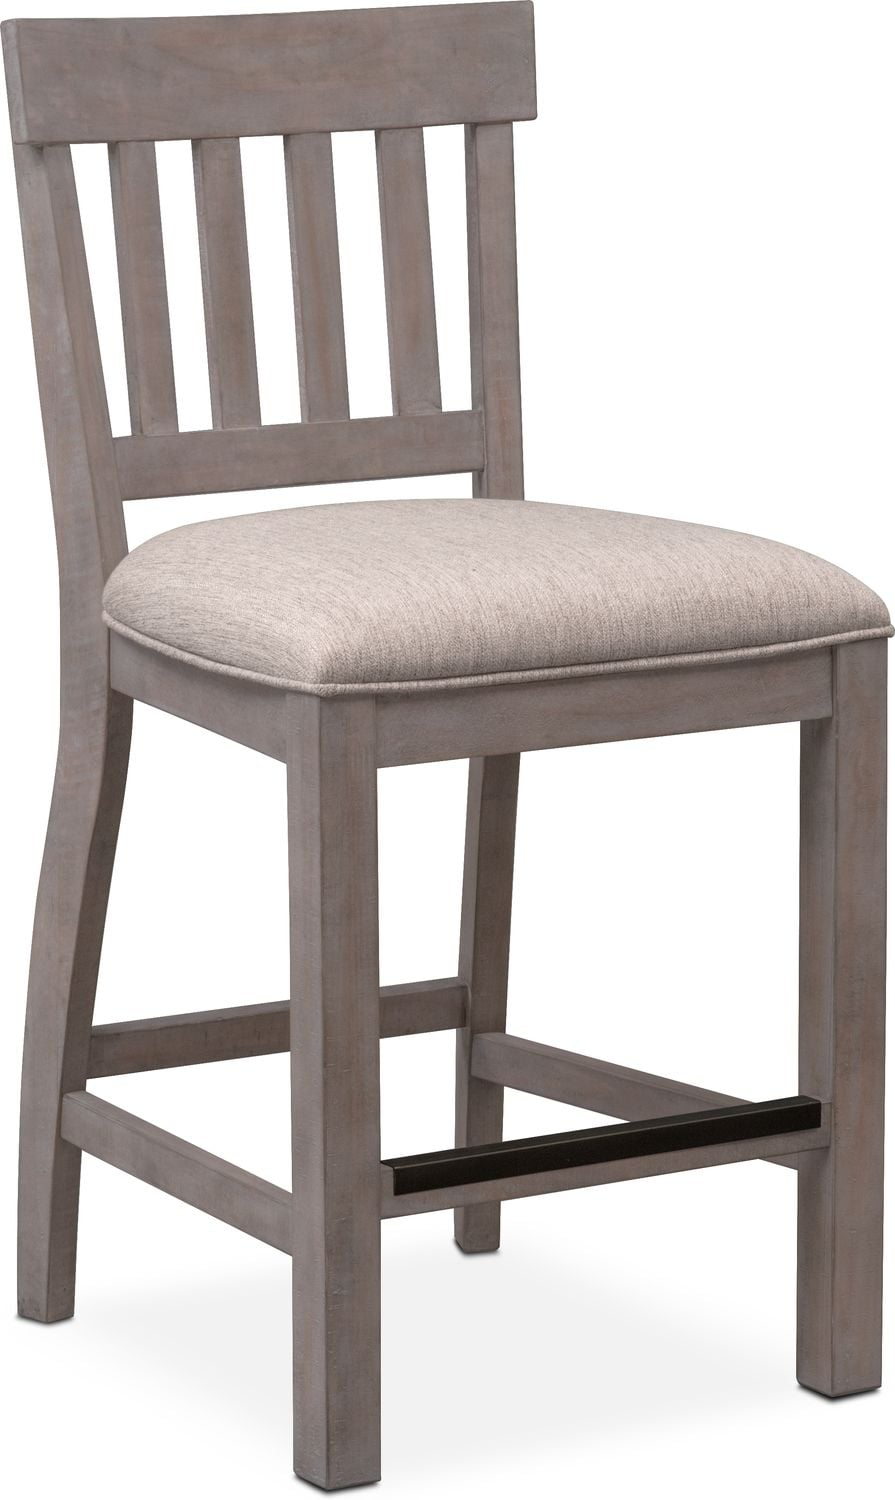 Dining Room Furniture - Charthouse Counter-Height Stool